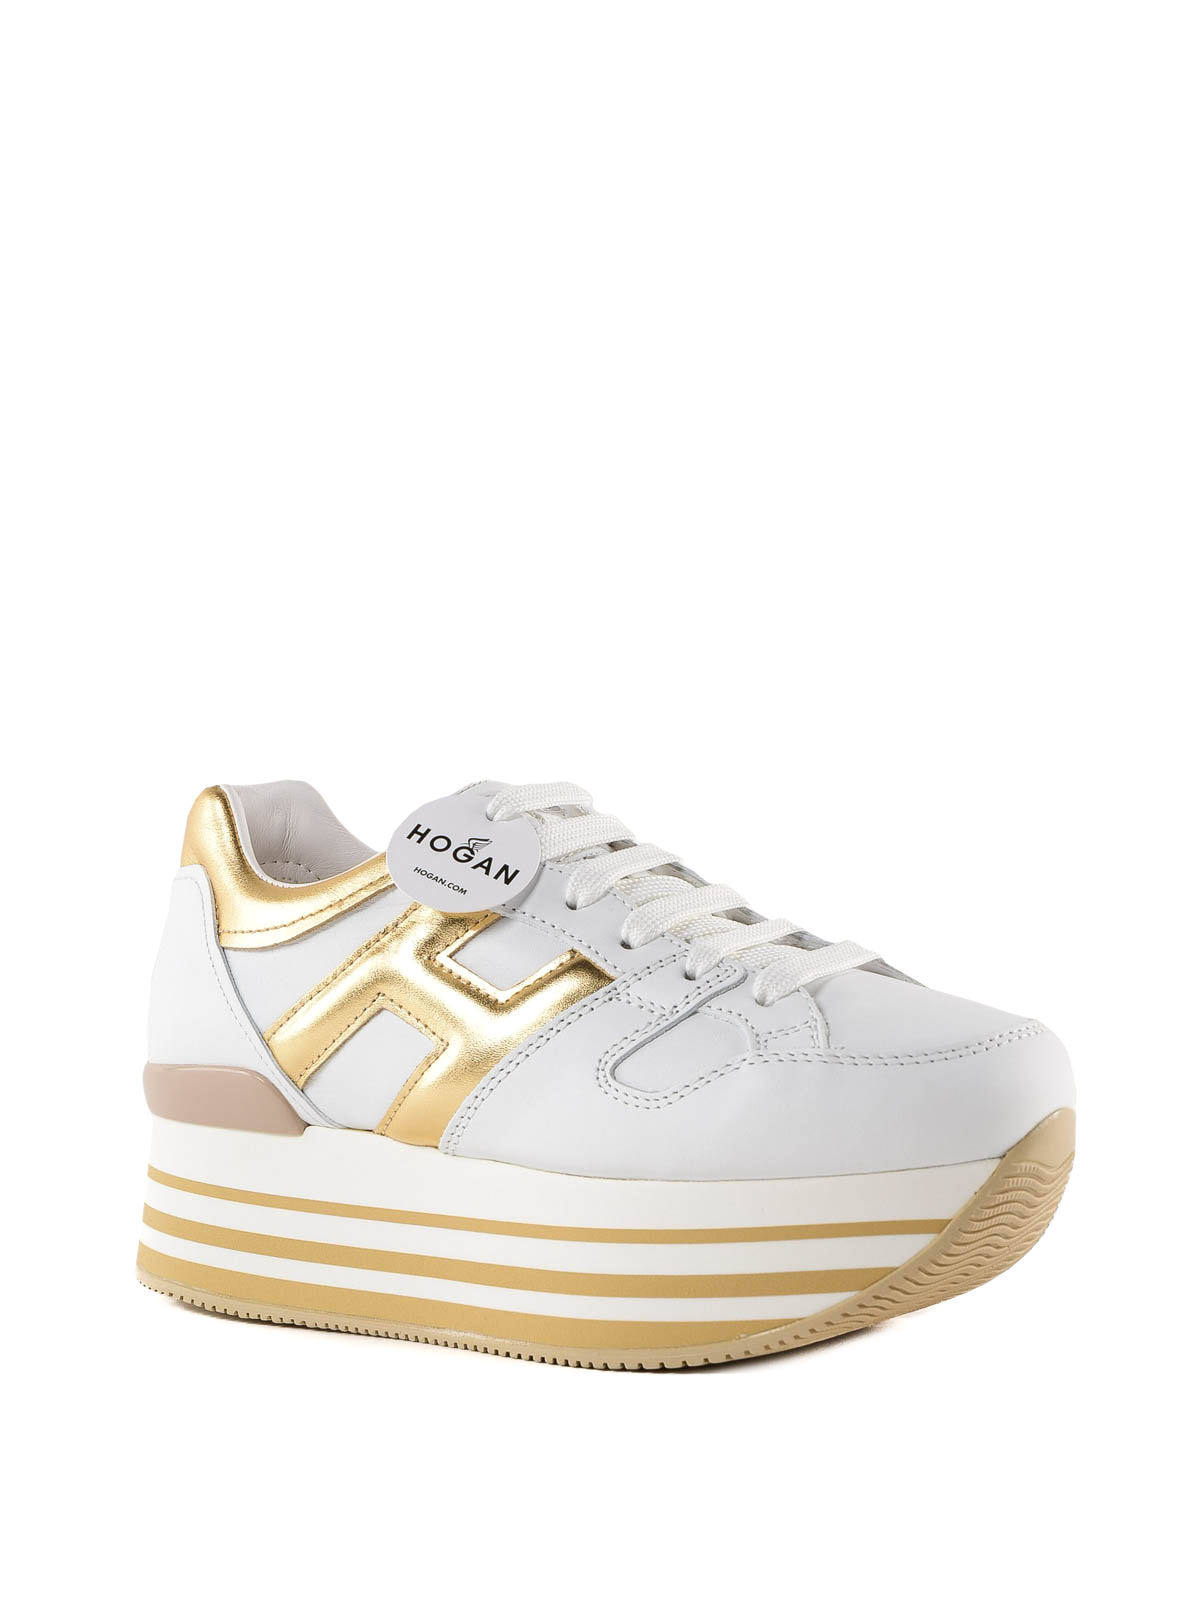 Hogan - Maxi H222 white and gold leather sneakers - trainers ...